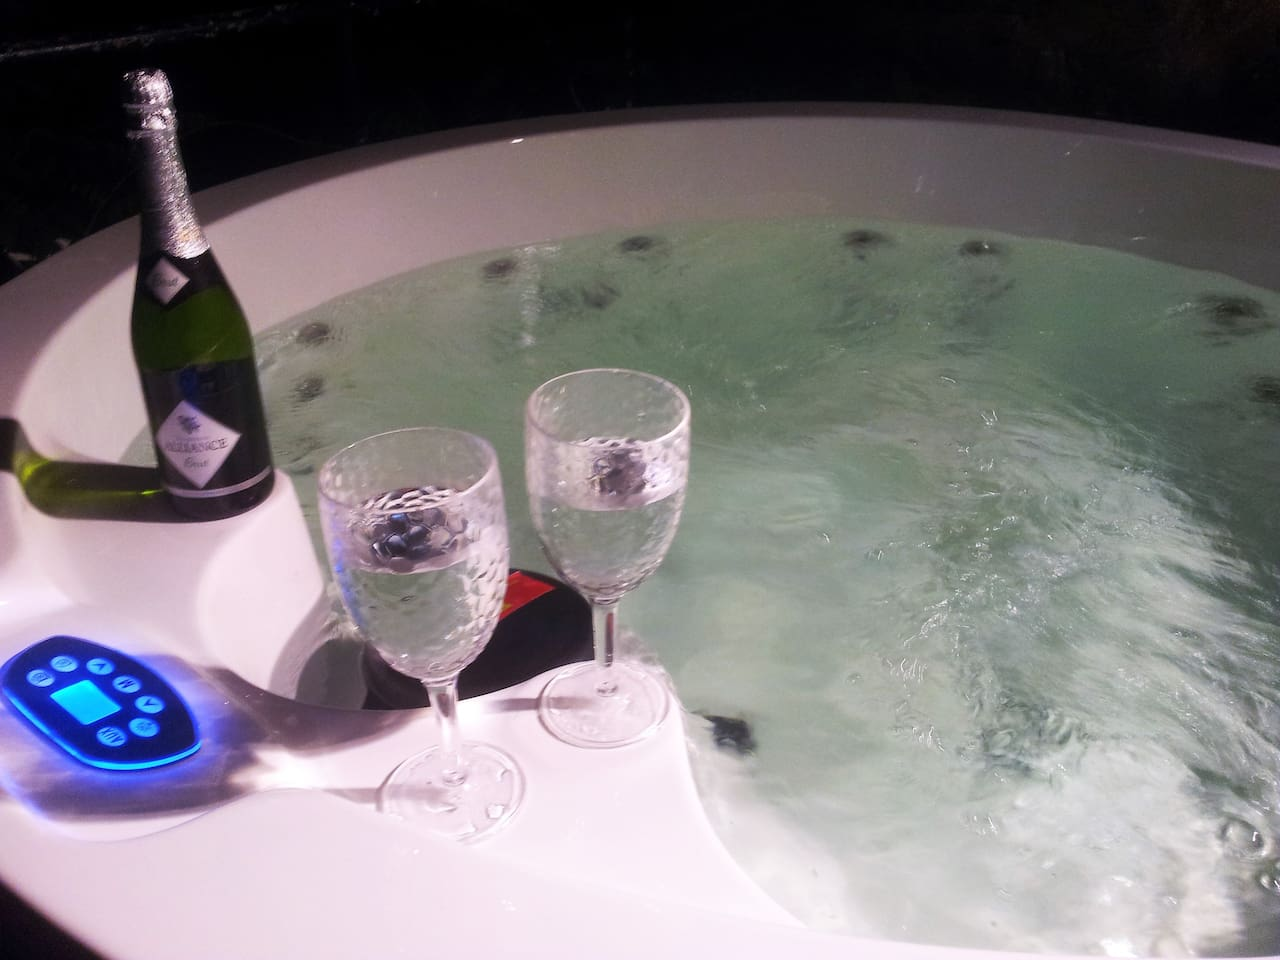 Your hot tub is warm and bubbly and waiting for you ...